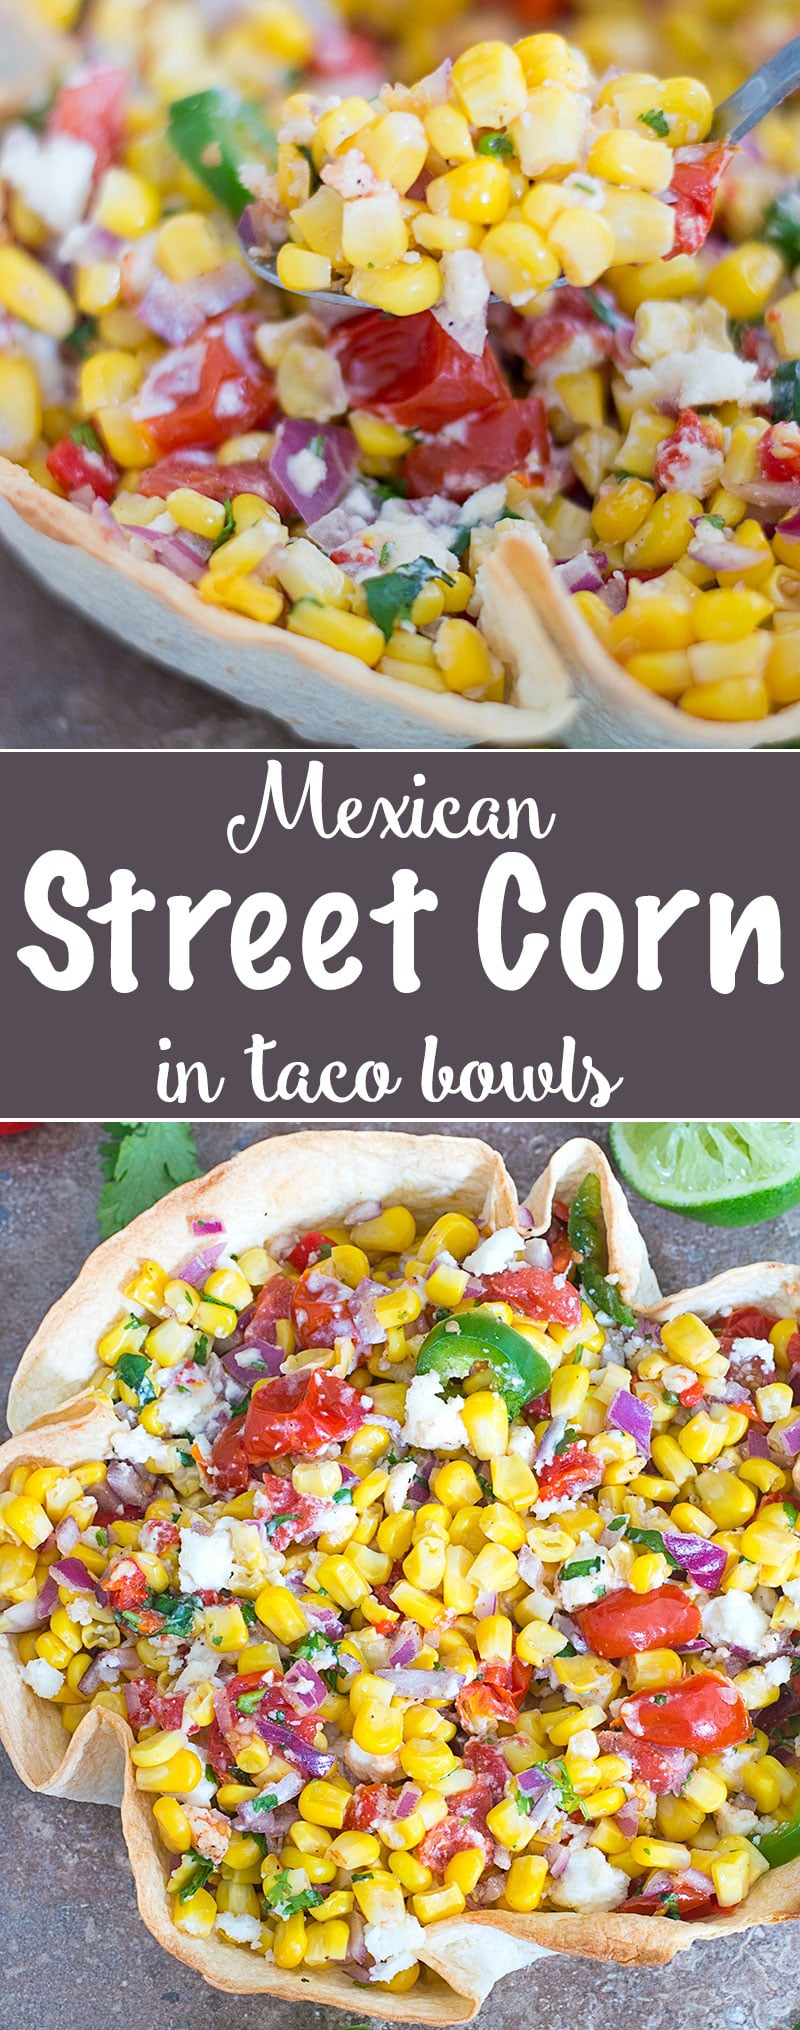 This Vegetarian Mexican Street Corn is made with sweet corn and mixed with roasted cherry tomatoes. Served in a Taco Bowl and perfect Cinco De Mayo recipe